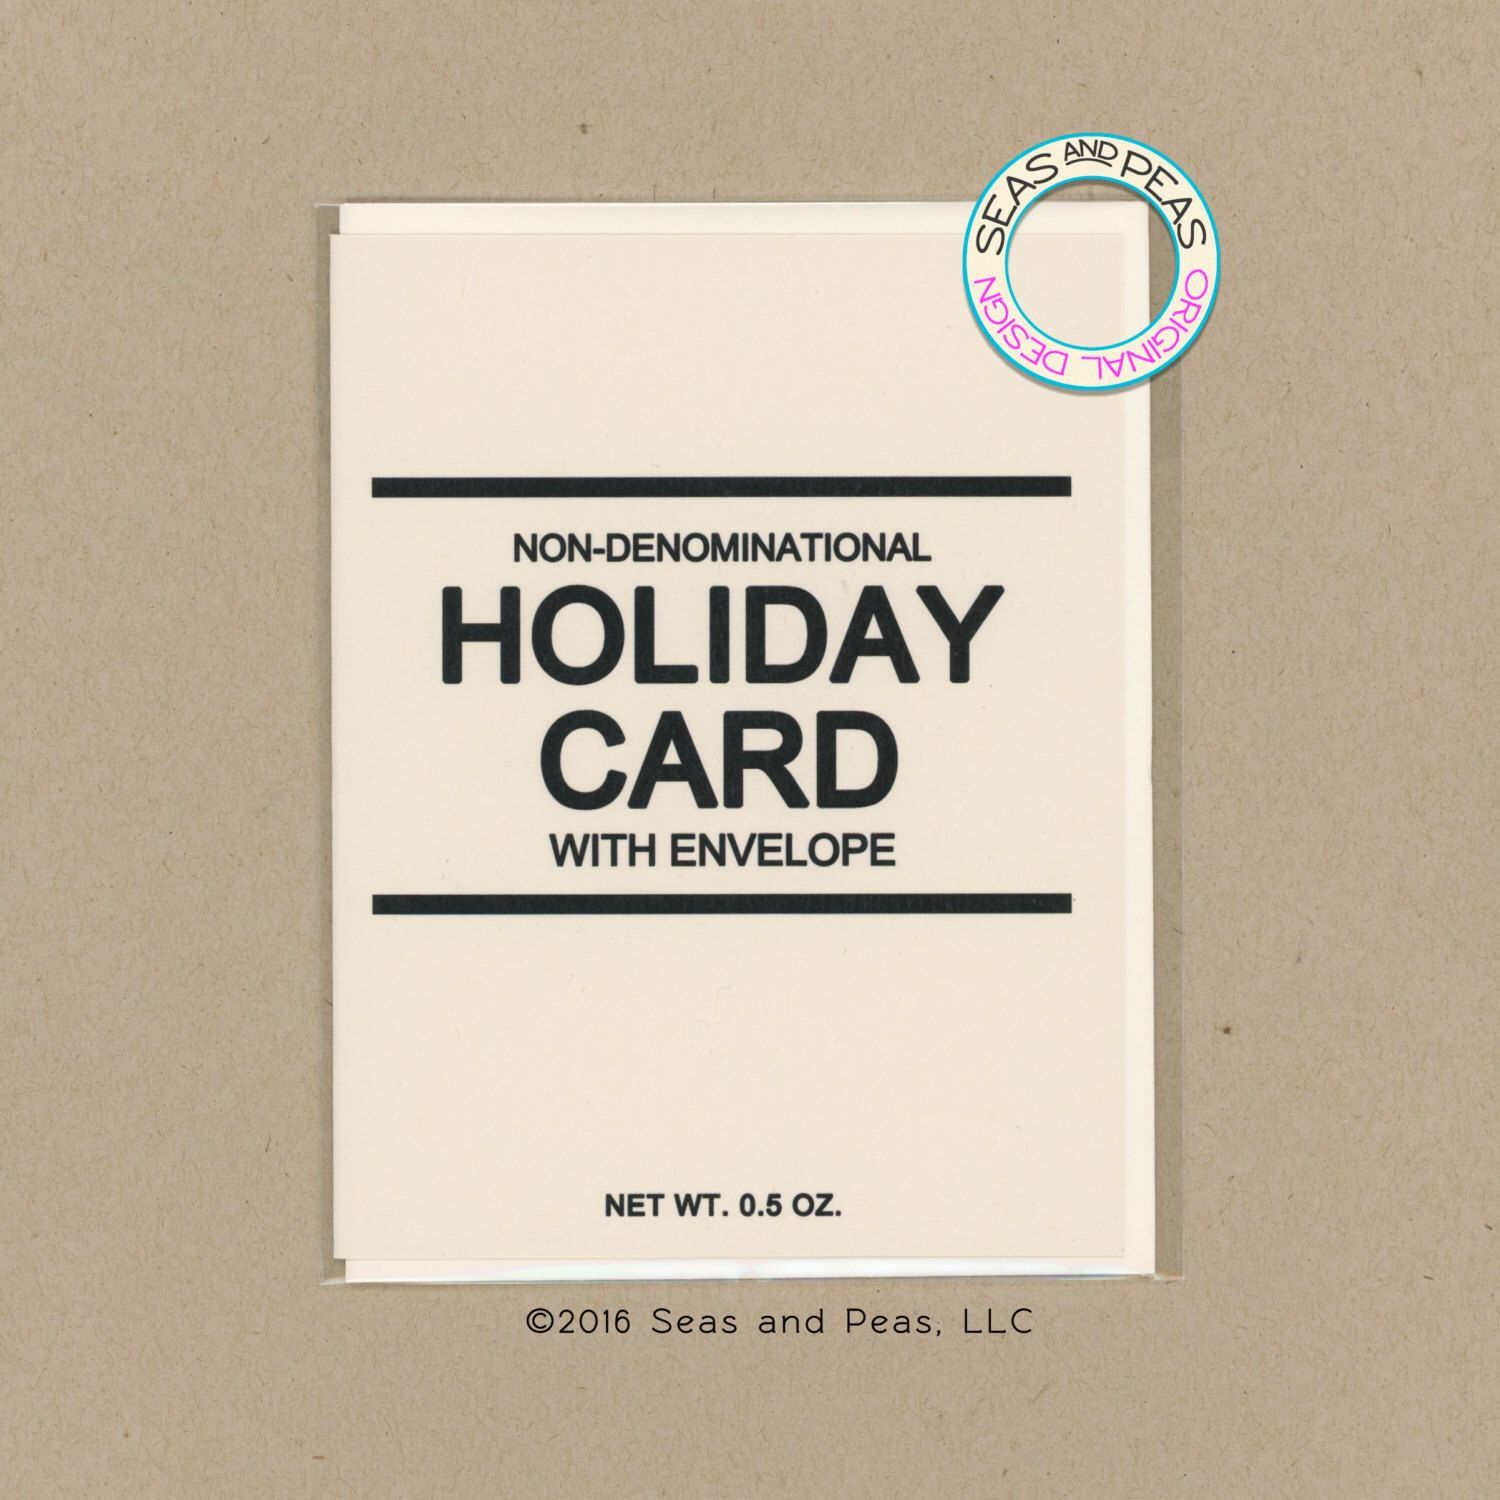 Non Denominational Holiday Greetings Gallery Greetings Card Design